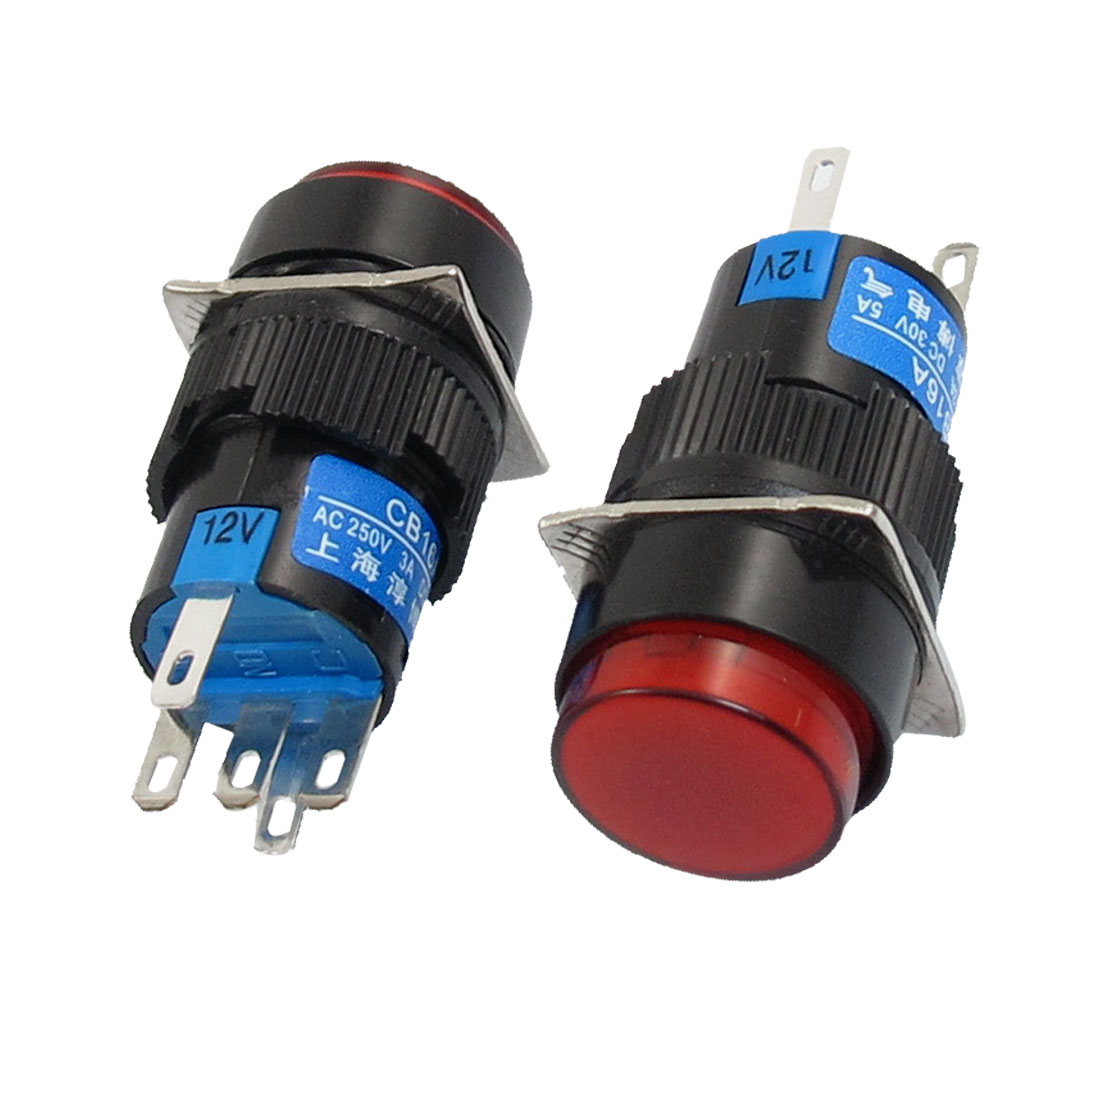 DC 12V Lamp SPDT Red Ignition Round Head Self-locking Pushbutton Switch 2Pcs